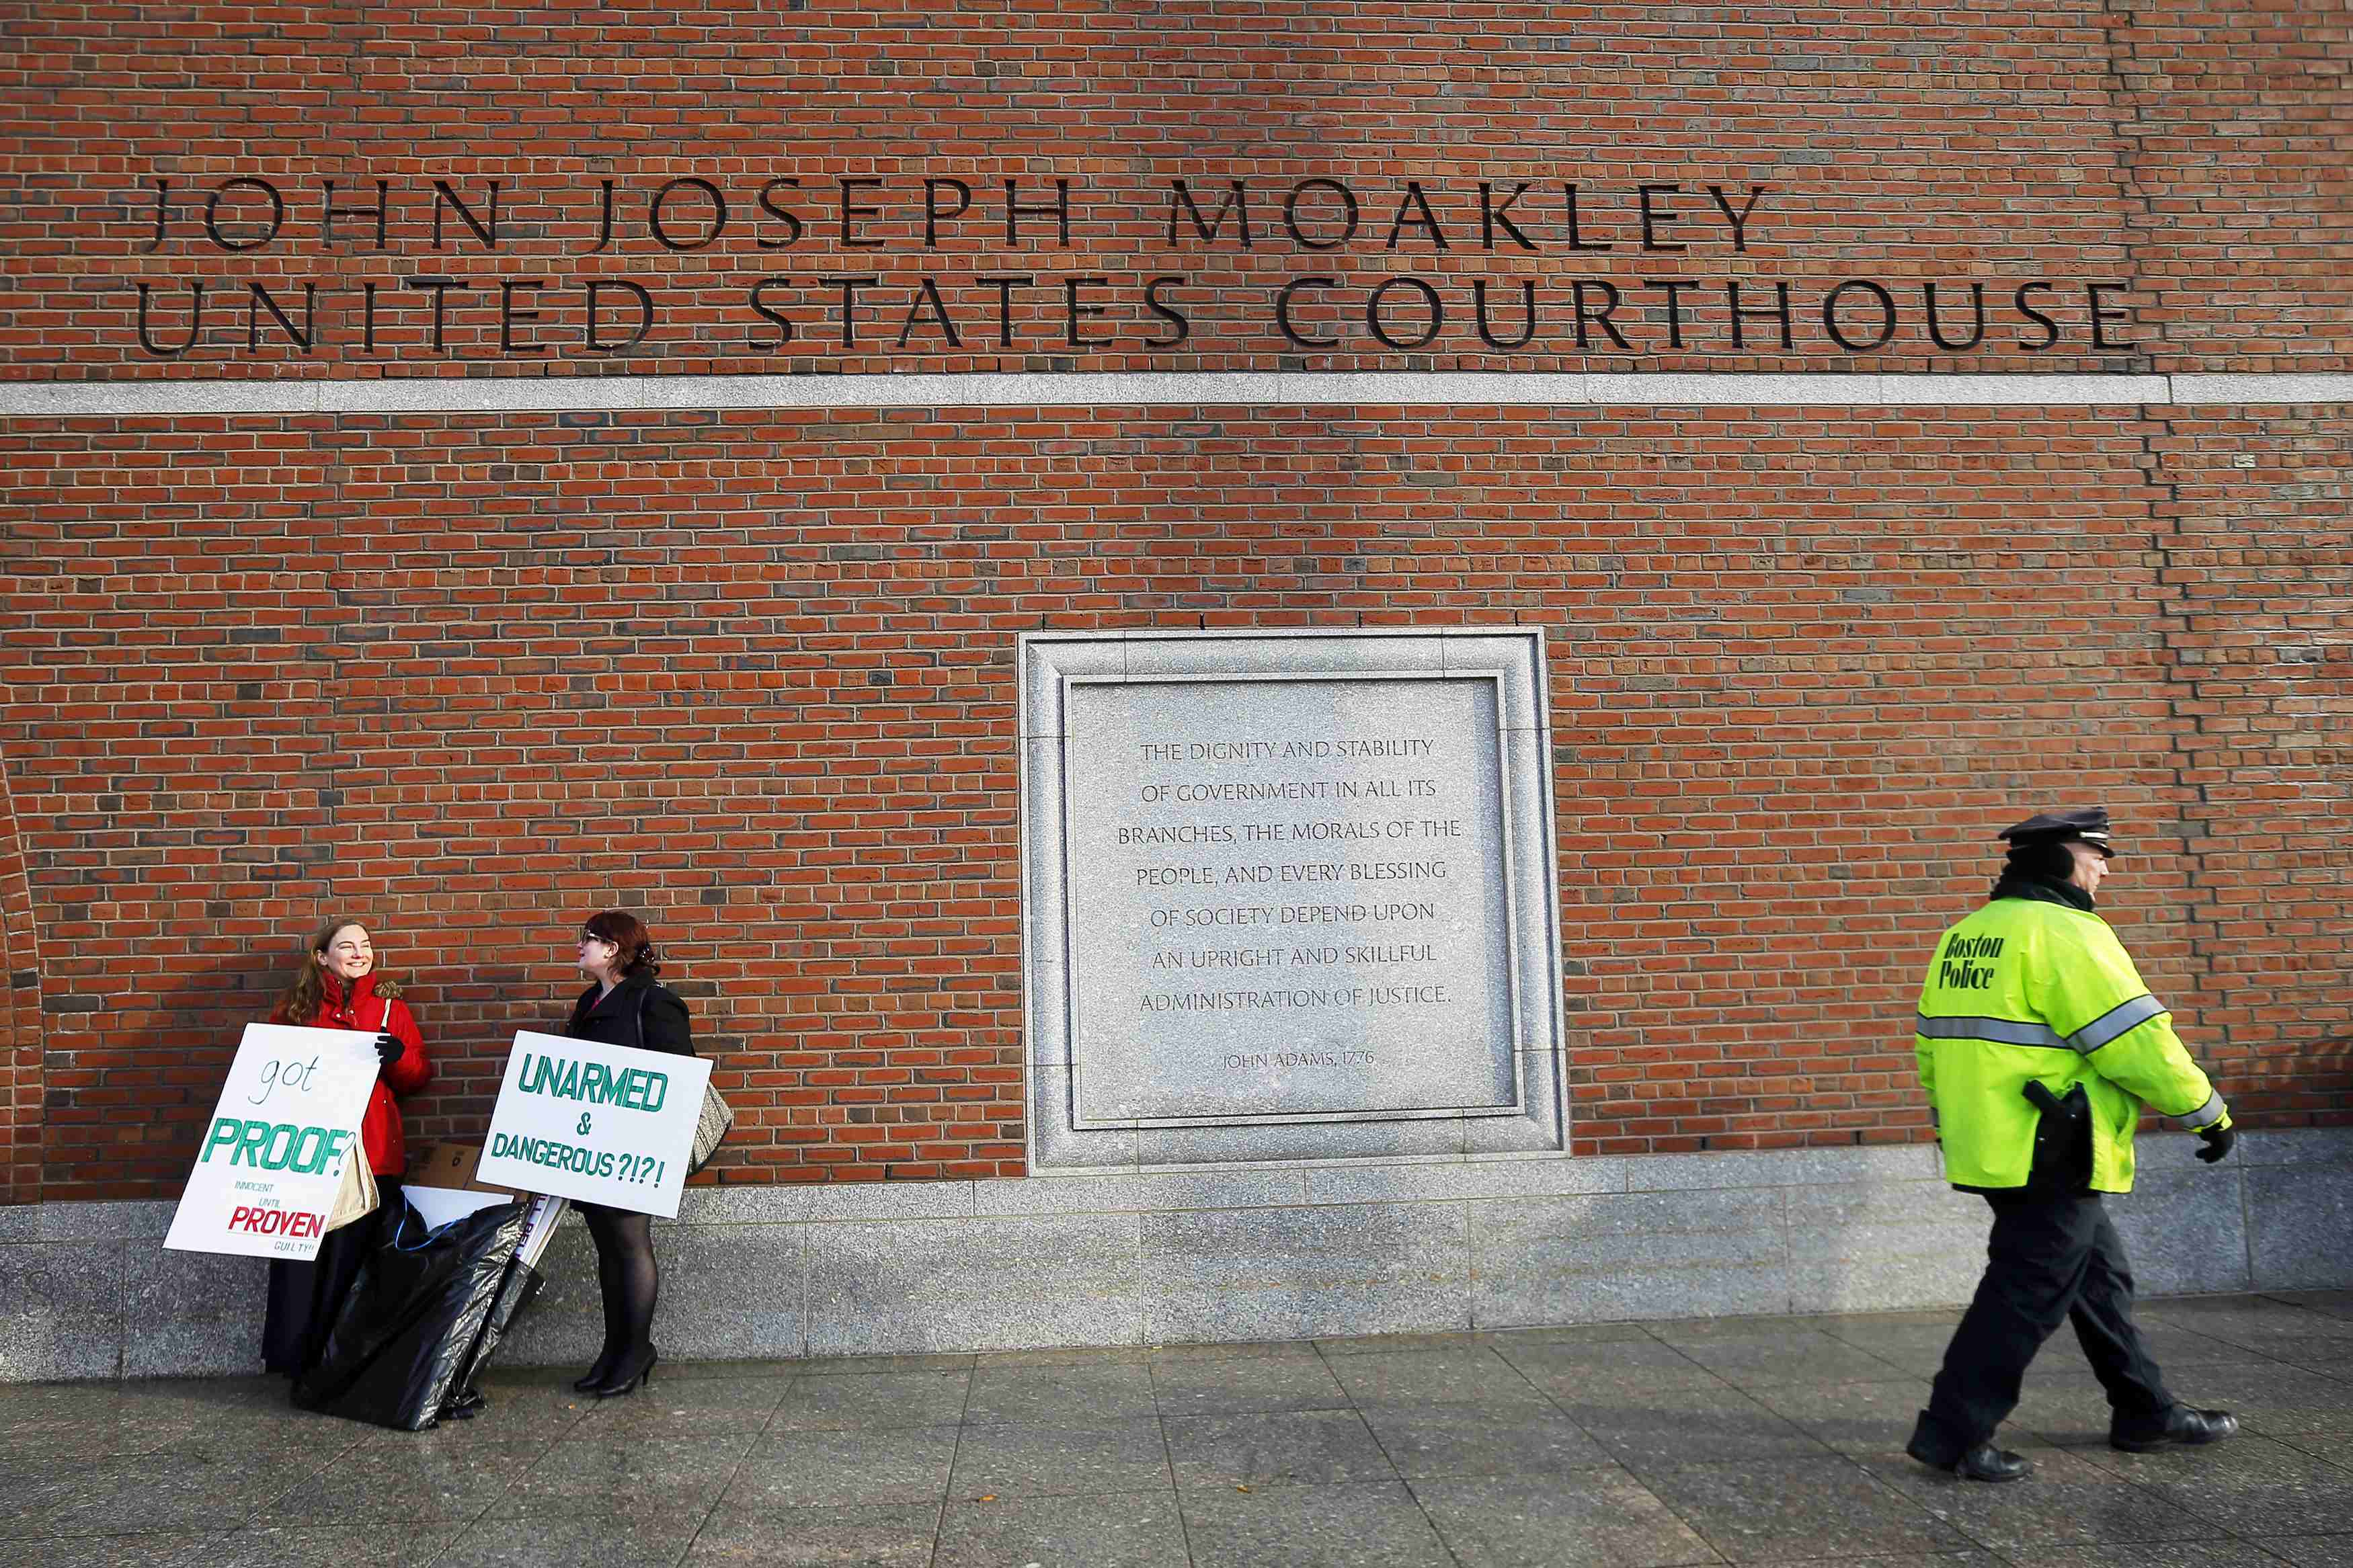 Boston bombing suspect Tsarnaev wants 'supporters' moved away from courthouse